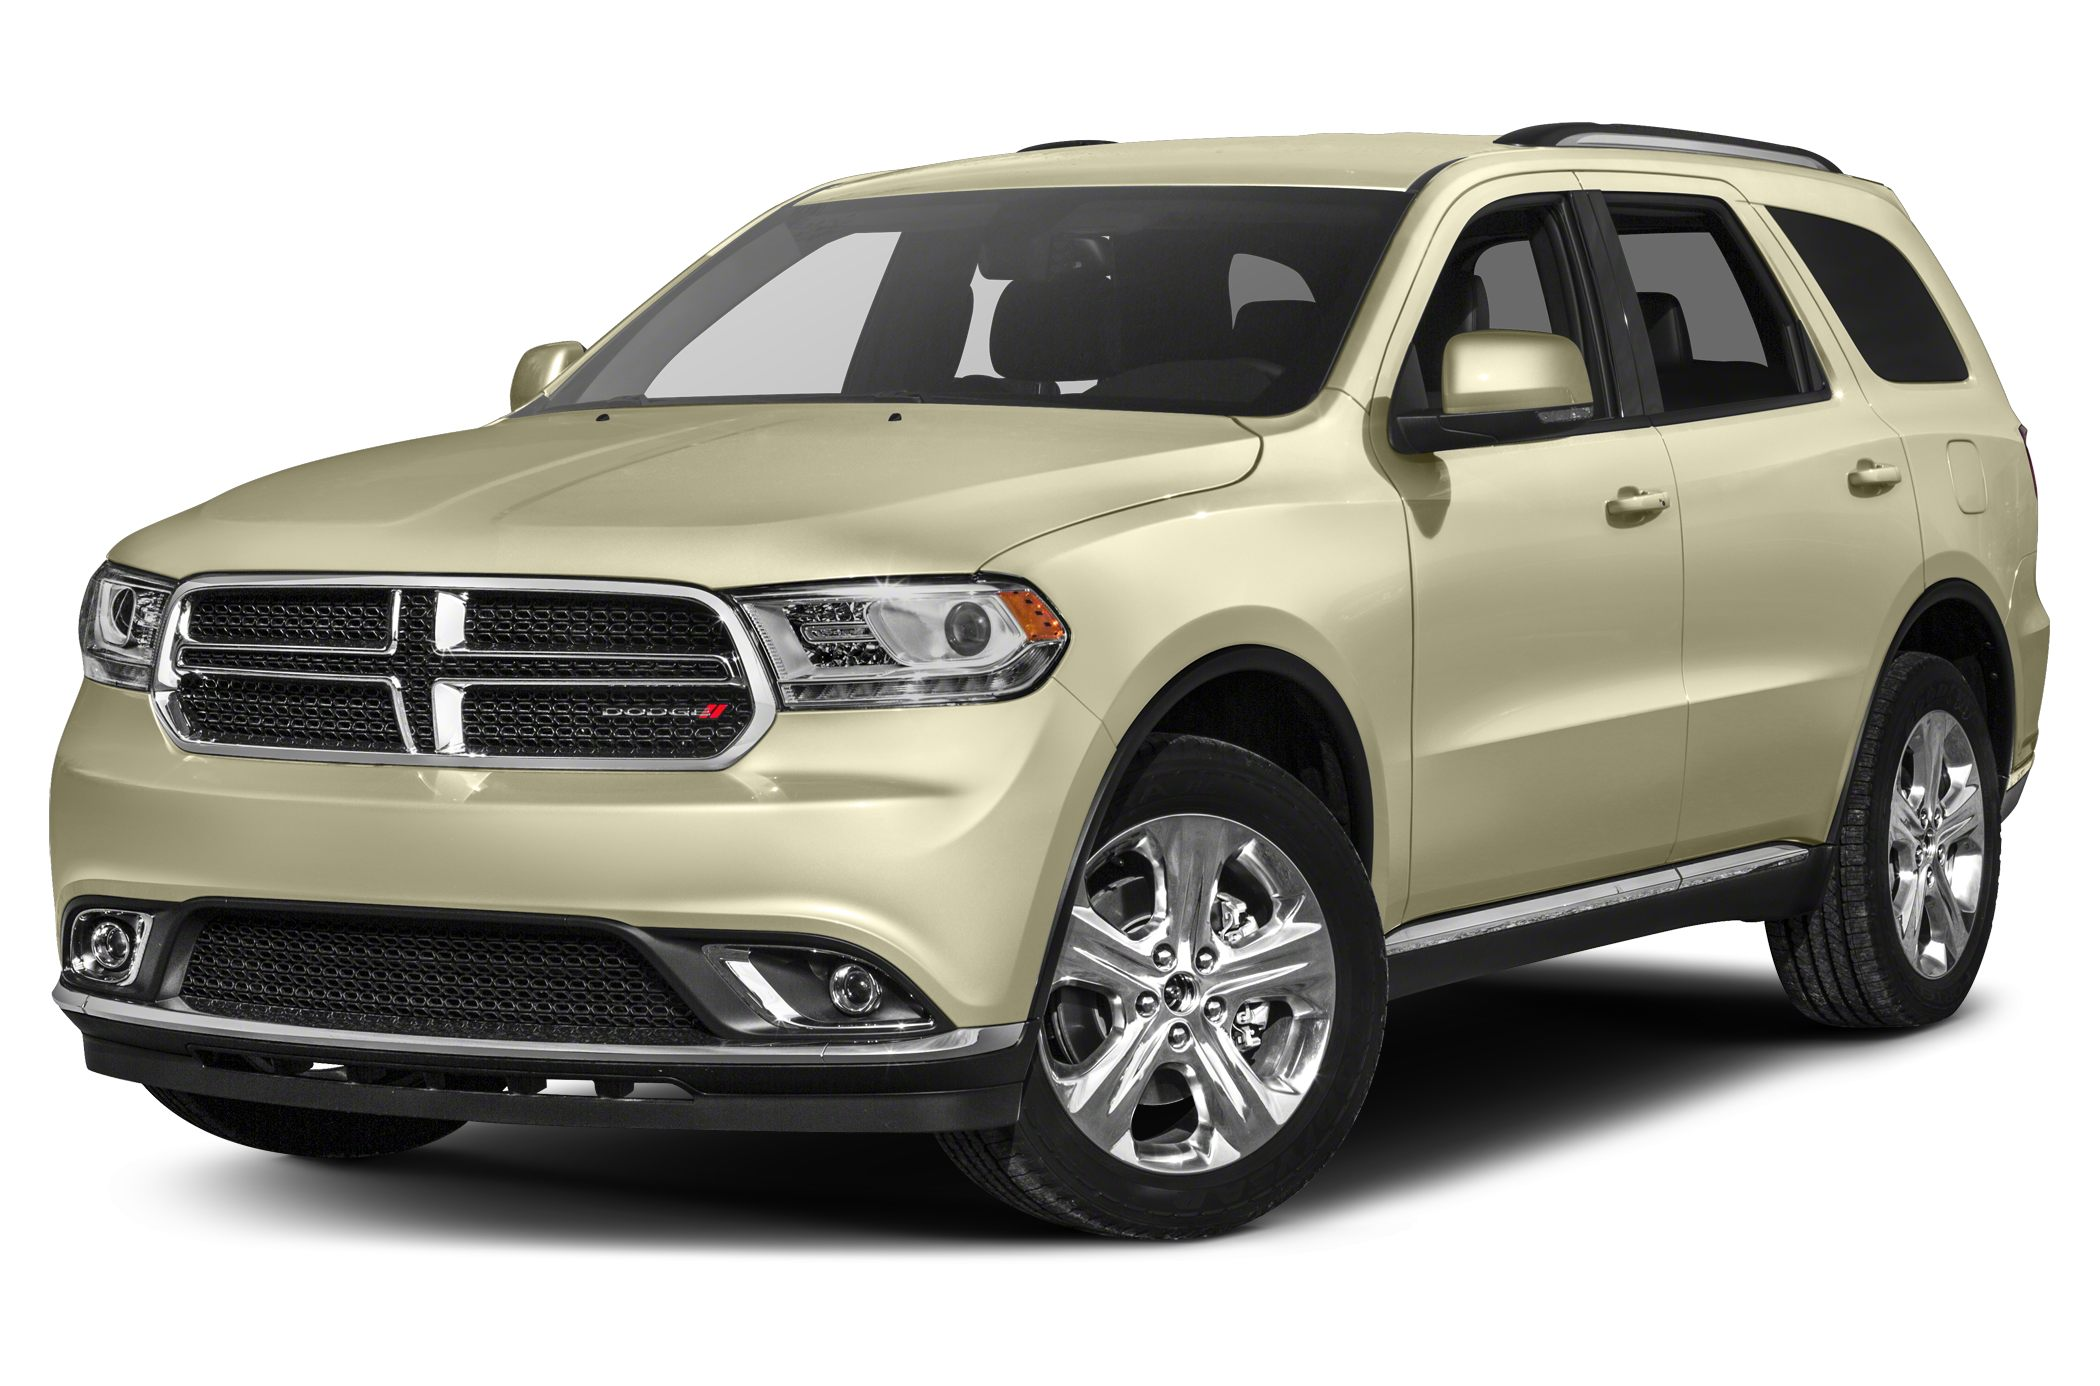 2014 Dodge Durango Citadel SUV for sale in Redford for $44,390 with 12 miles